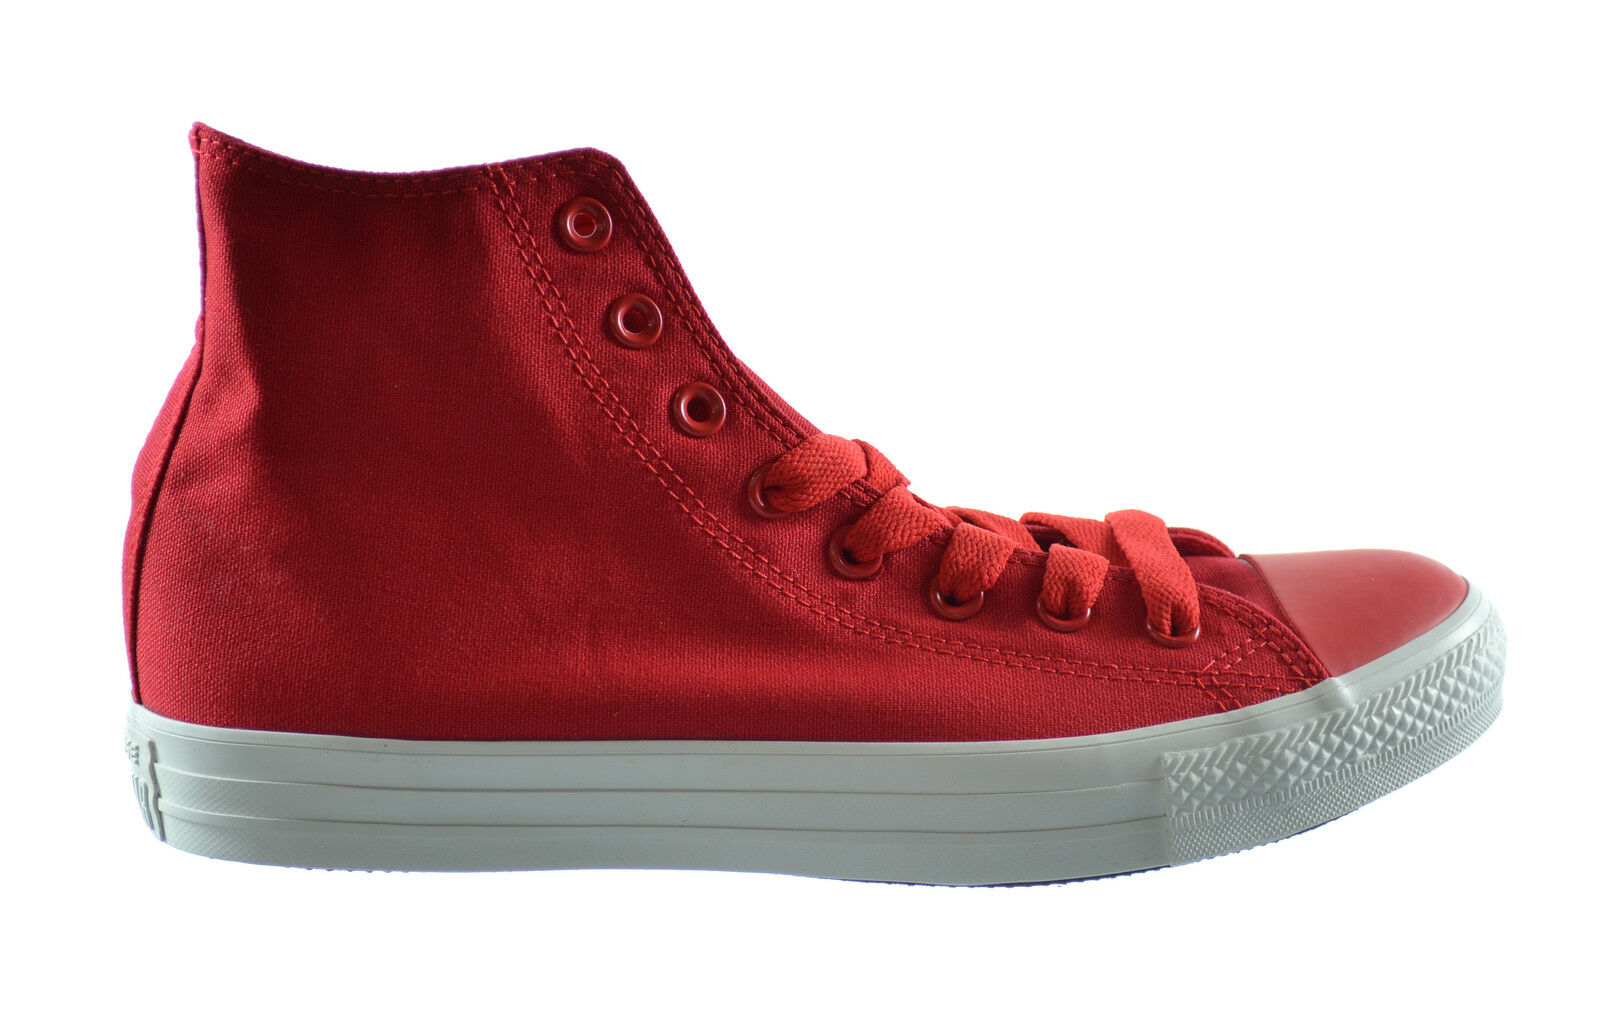 Converse Chuck Taylor Hi Men's Sneakers Casual Shoes Red 142401f